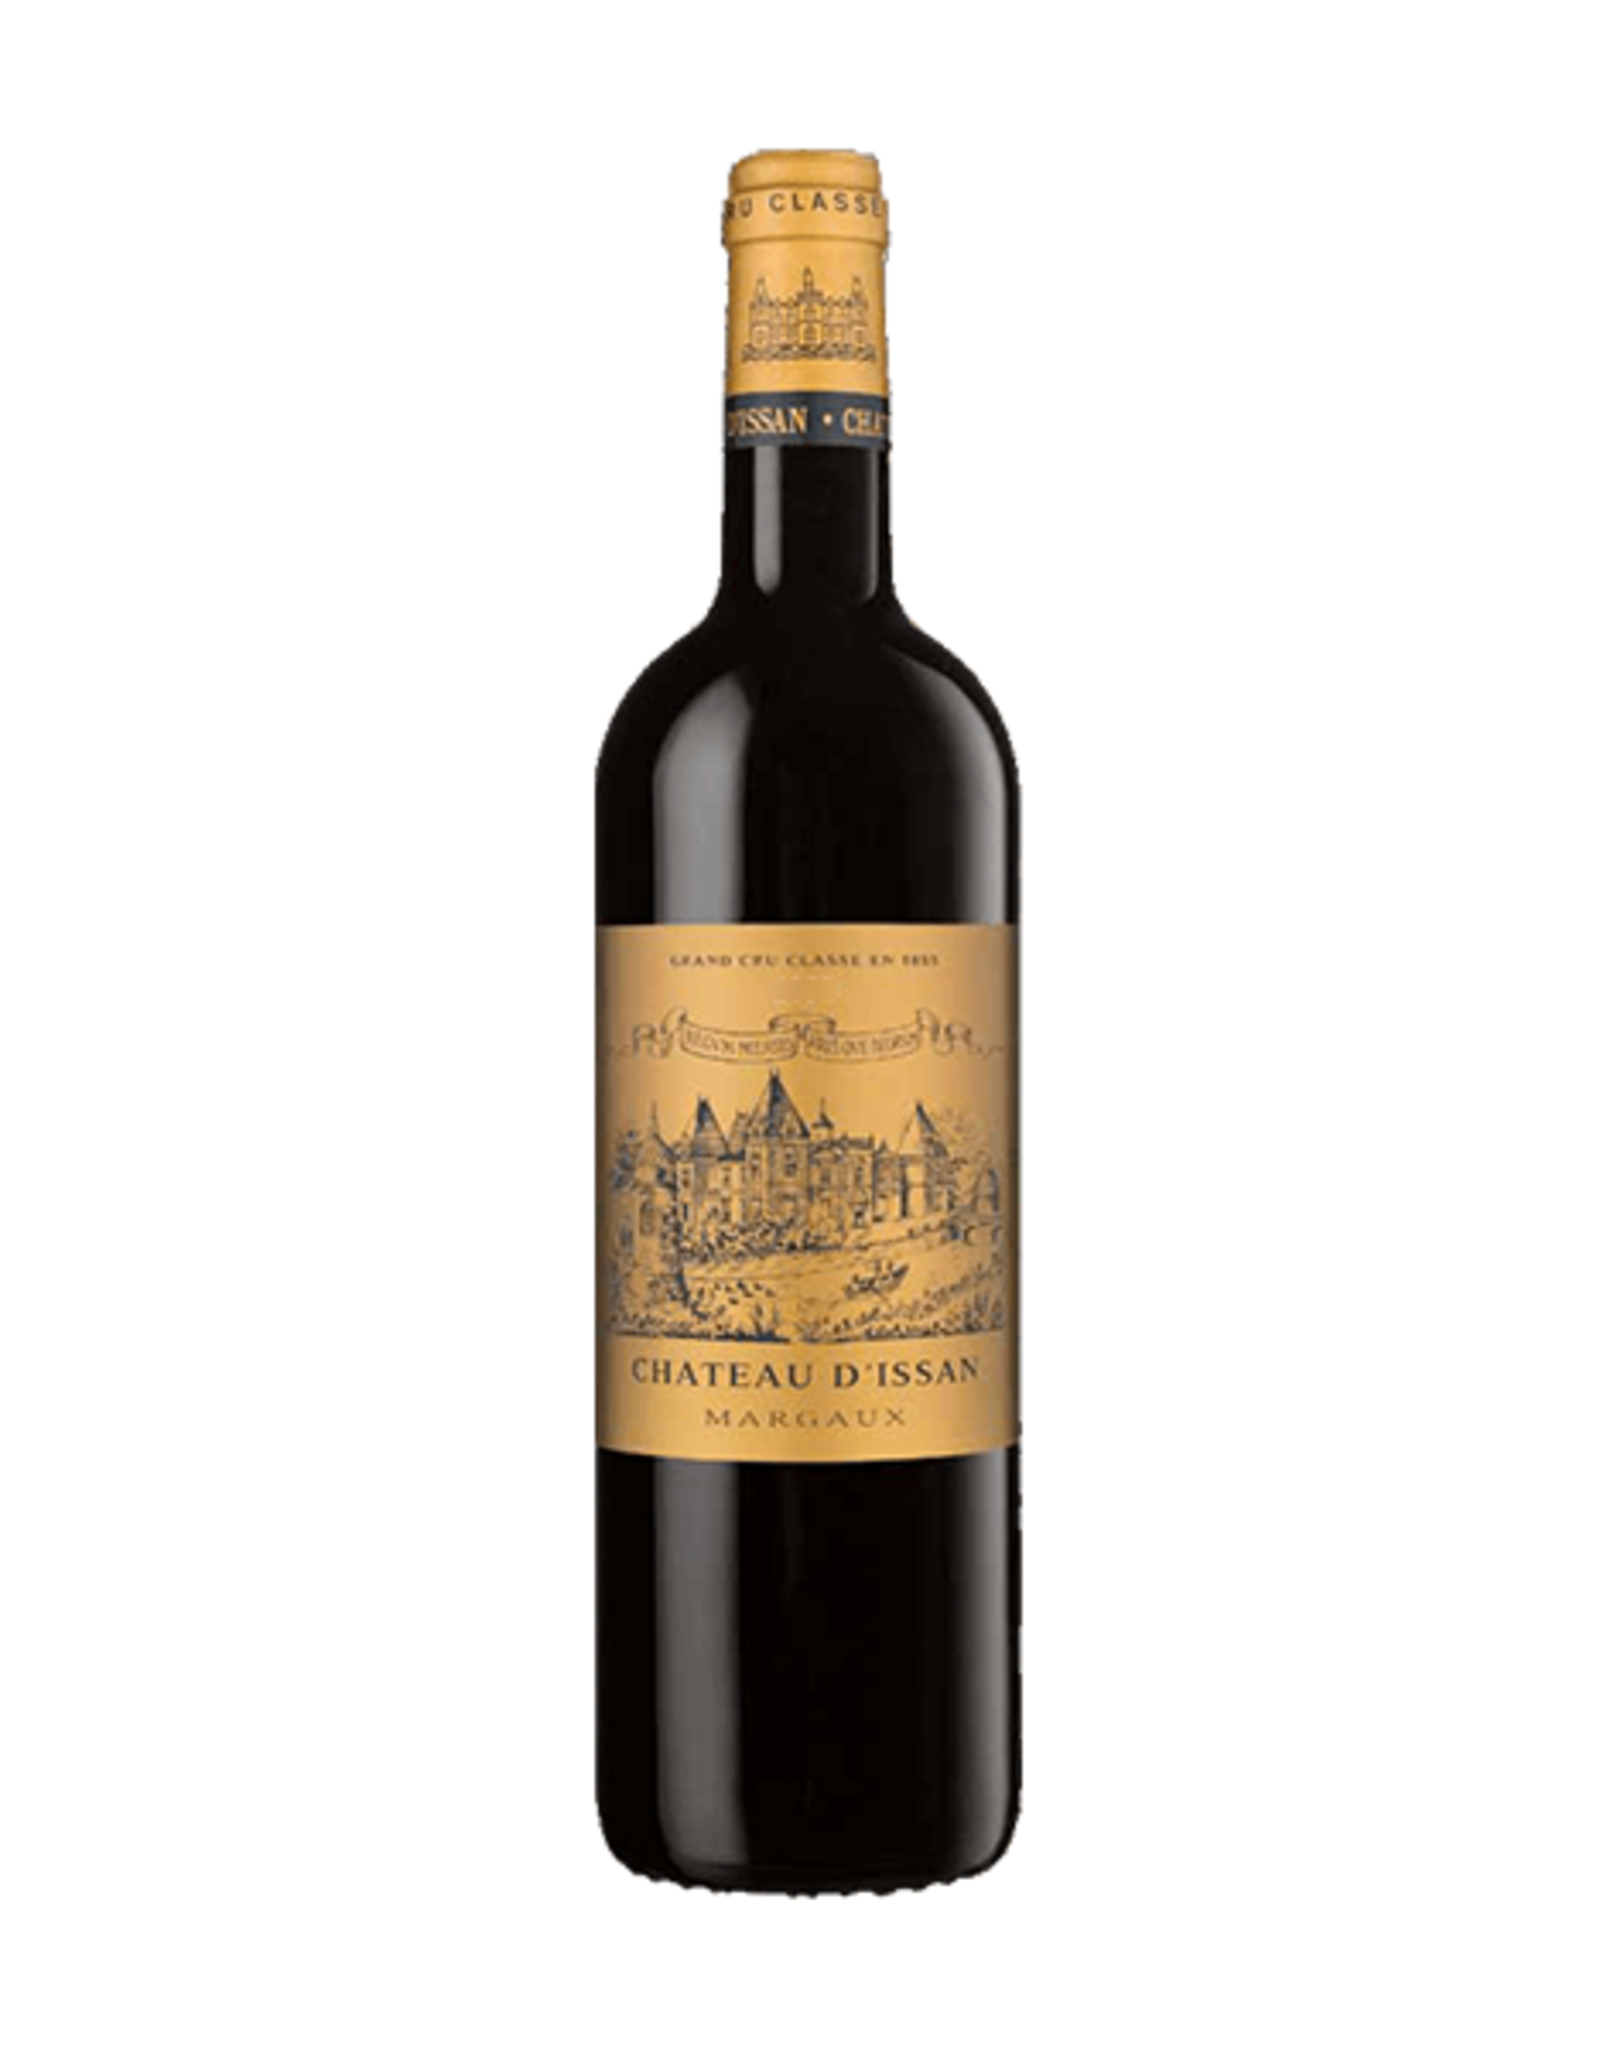 CHATEAU D'ISSAN MARGAUX 2013